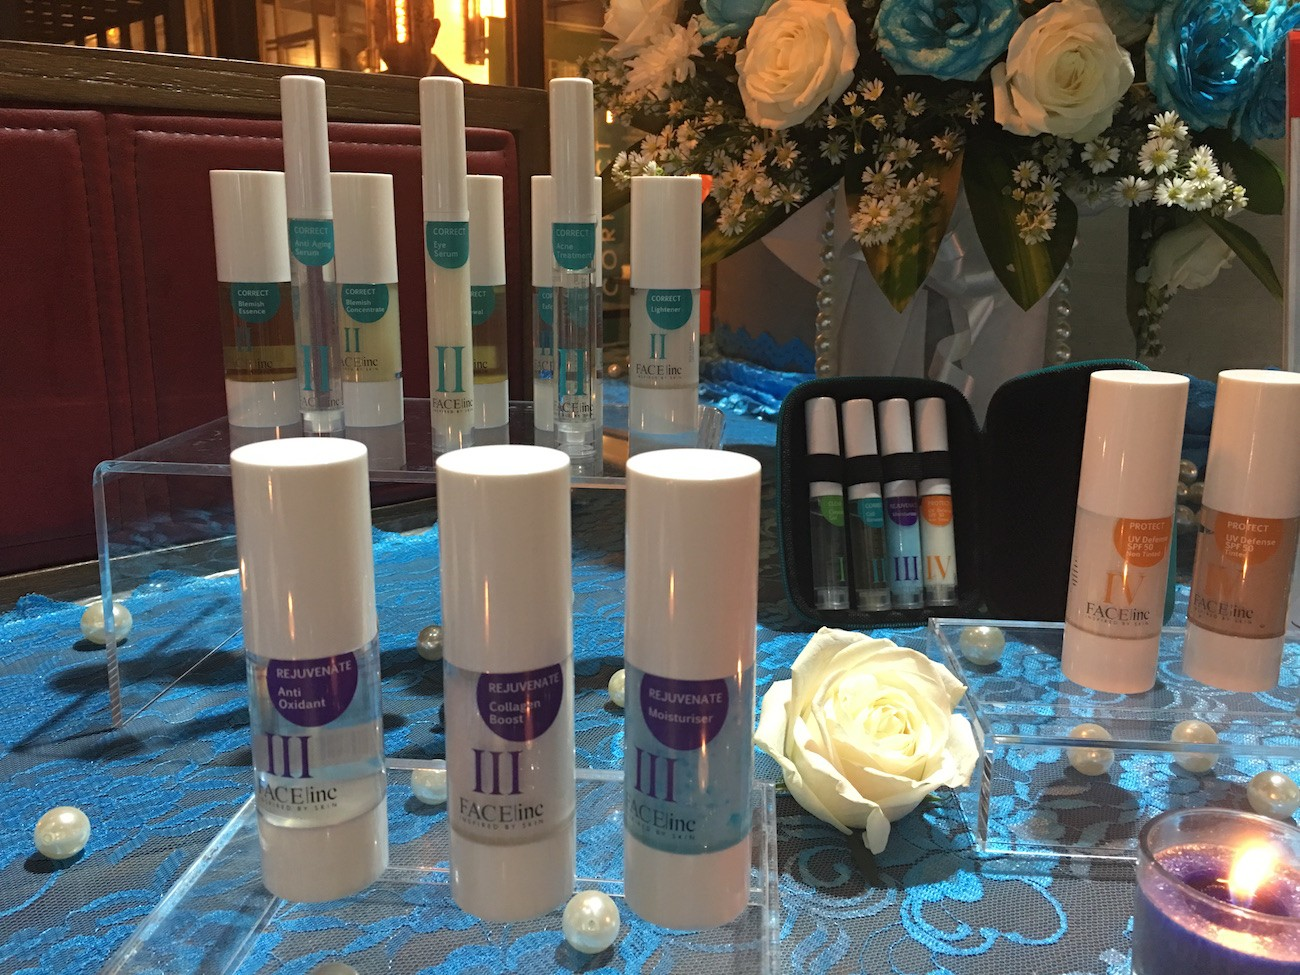 The Face Inc launches new 'online consultation' for skincare products